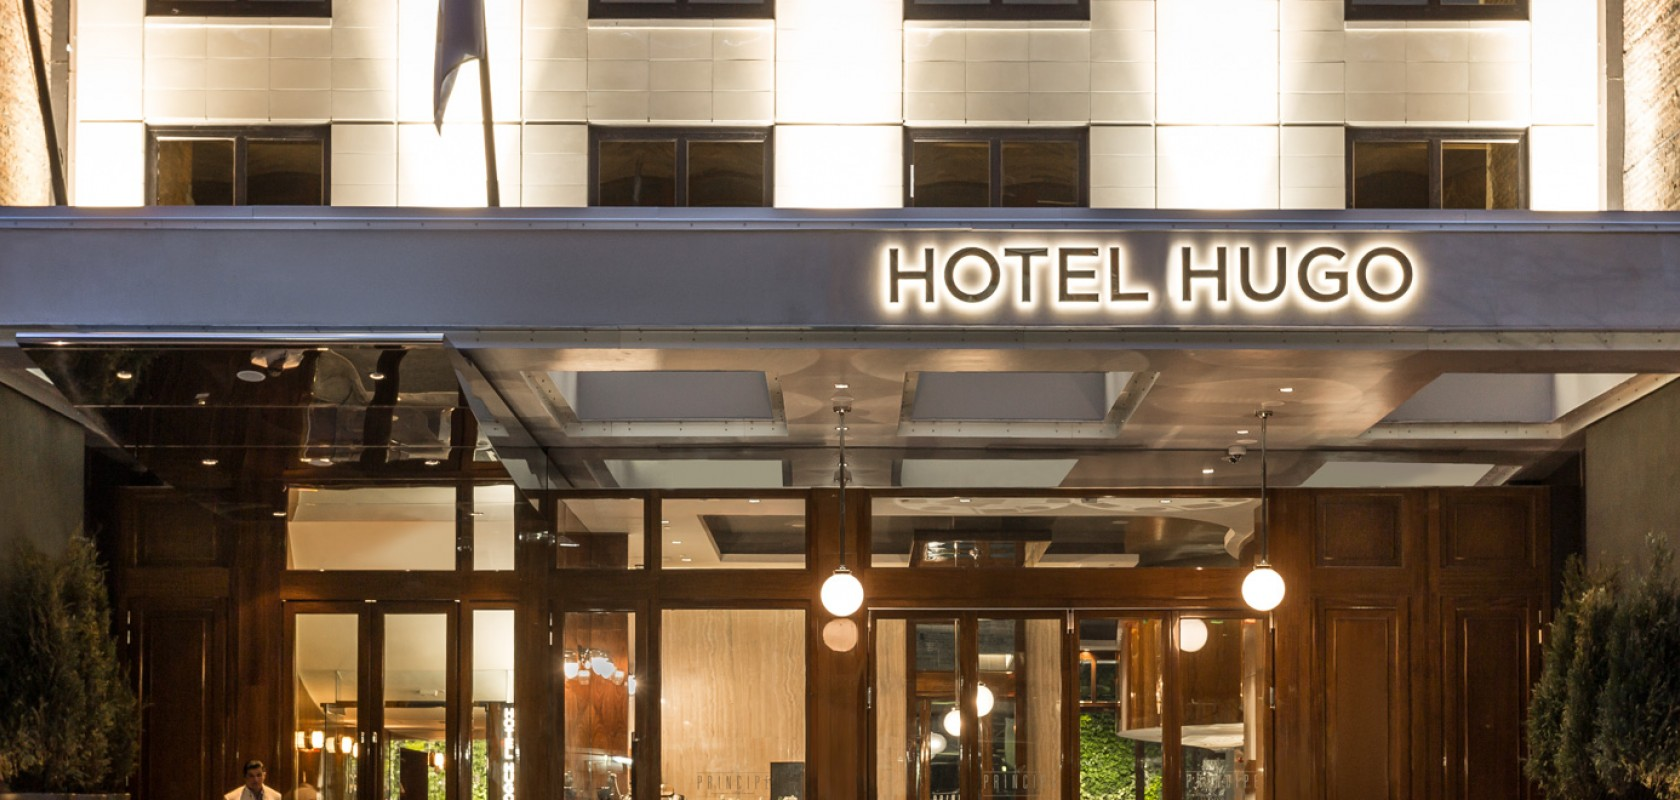 Contact hotel hugo soho contact a soho hotel new york for Contact hotel